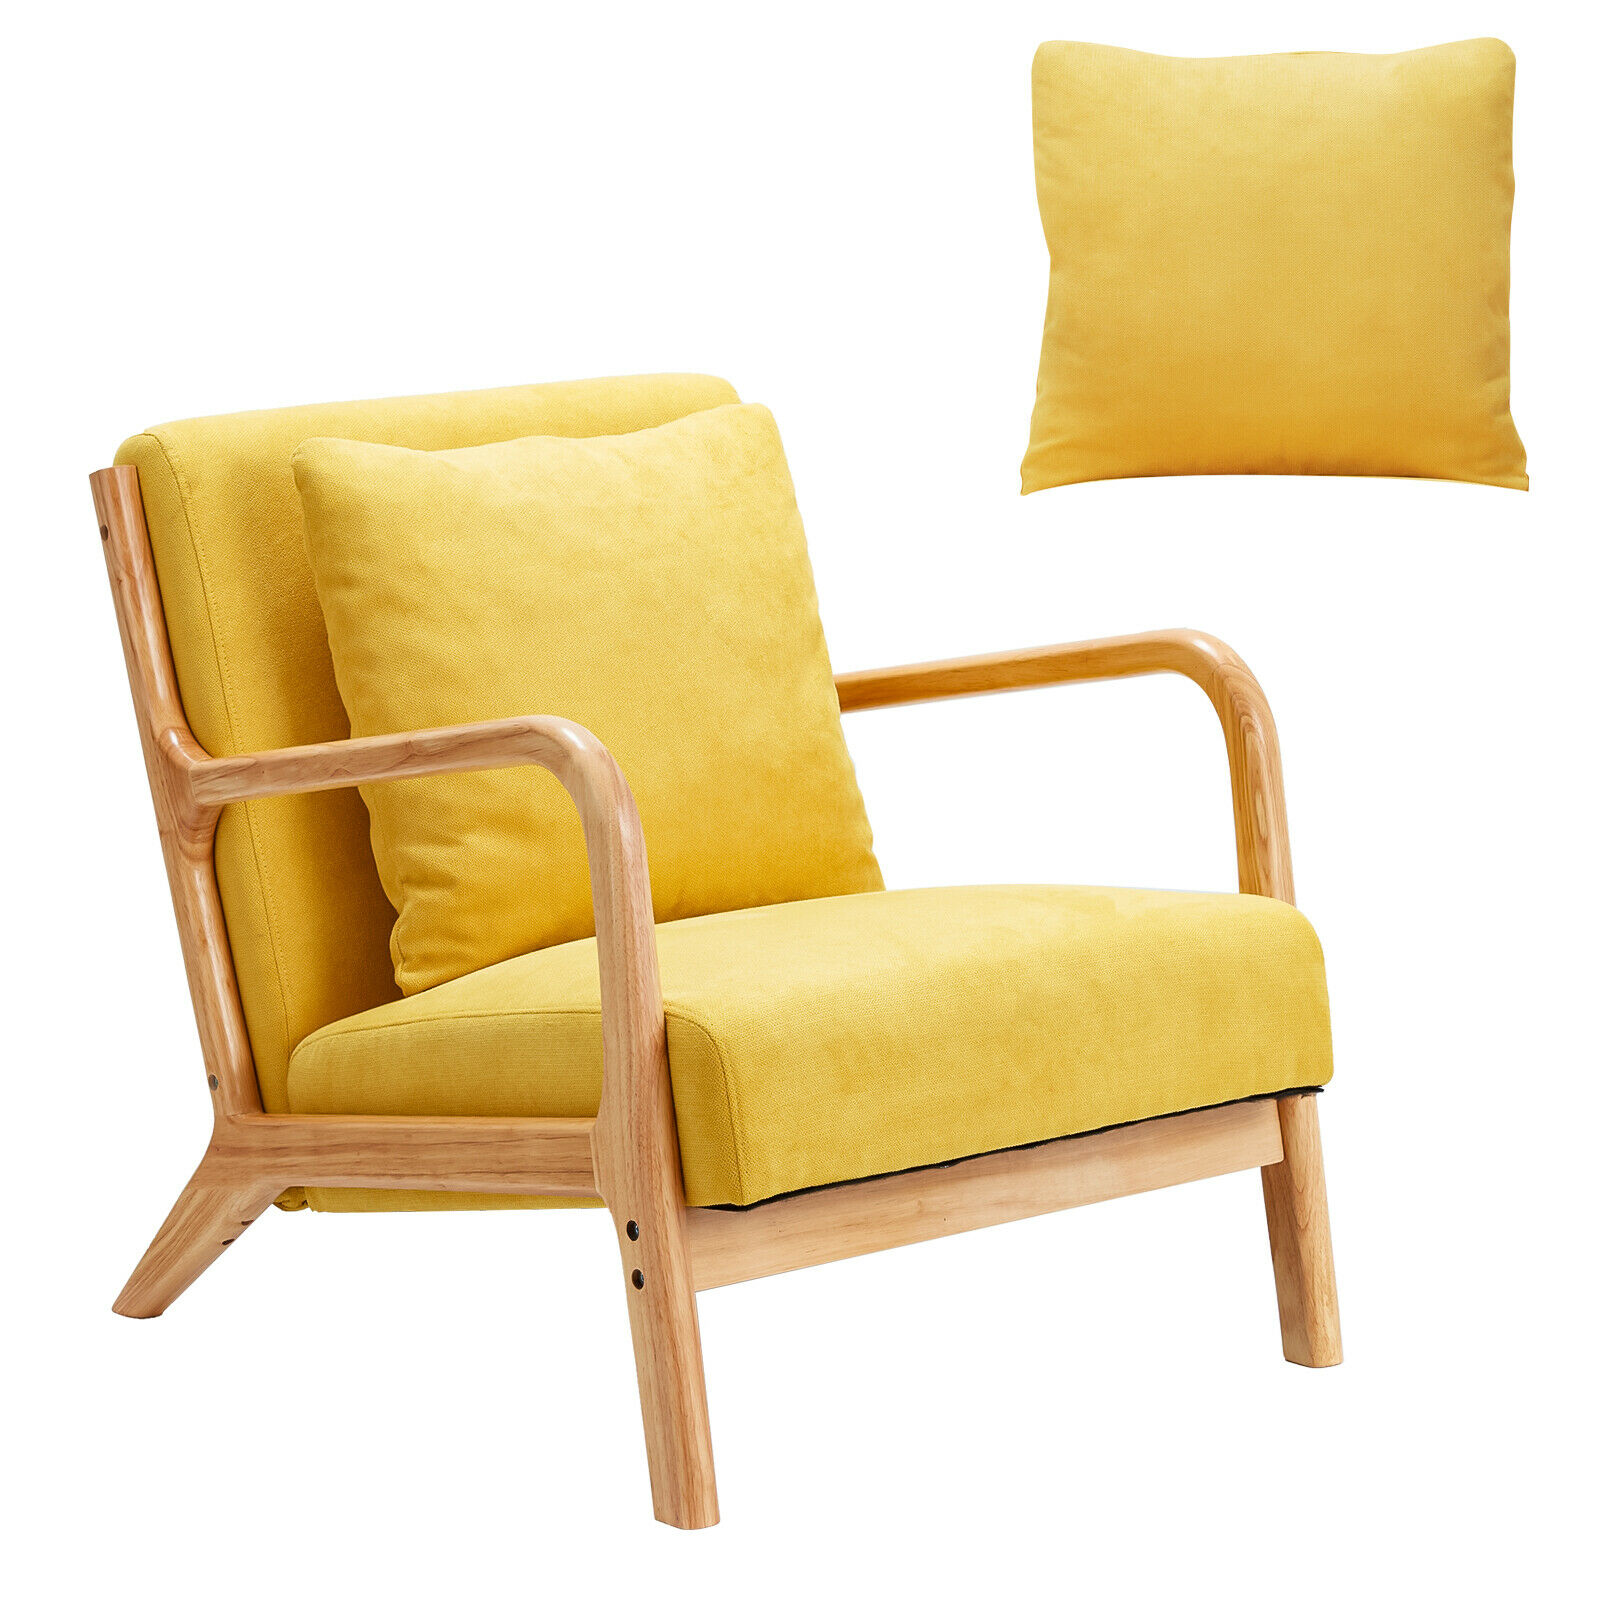 Esright Mid Century Accent Chair Wooden Modern Living Room Arm Chair Yellow Chairs